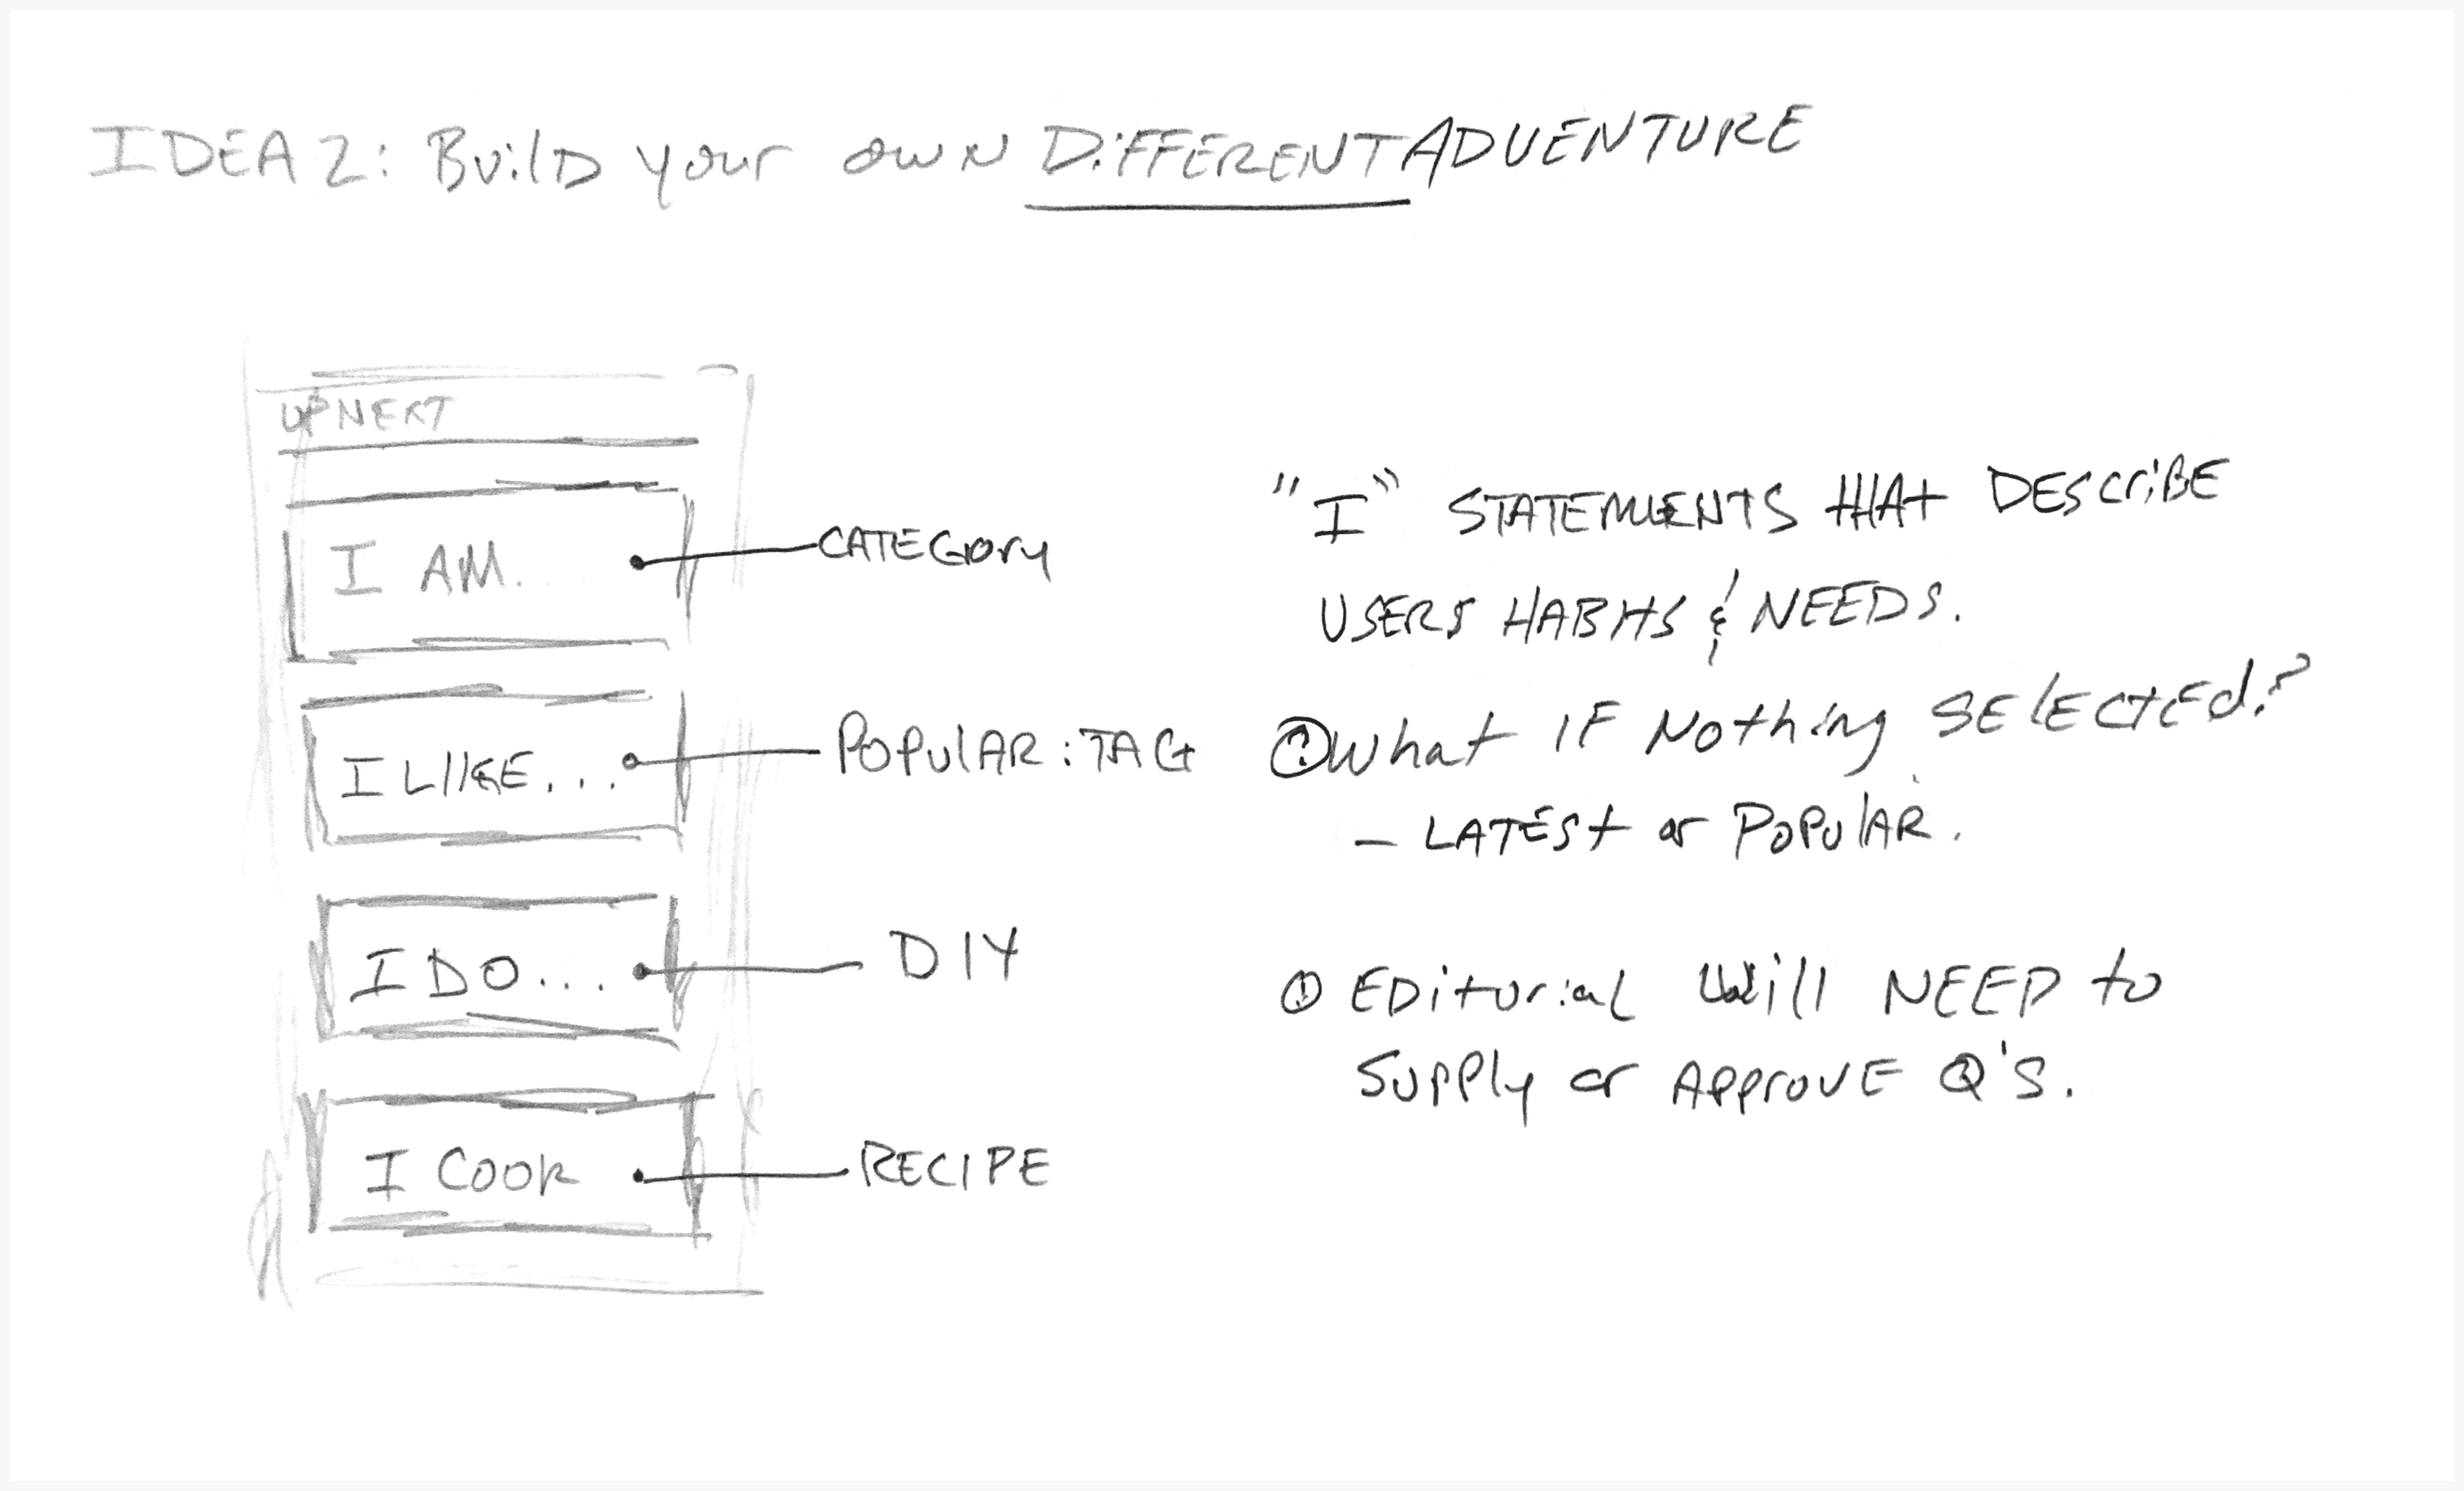 A sketch for a custom content experience with personal preference options